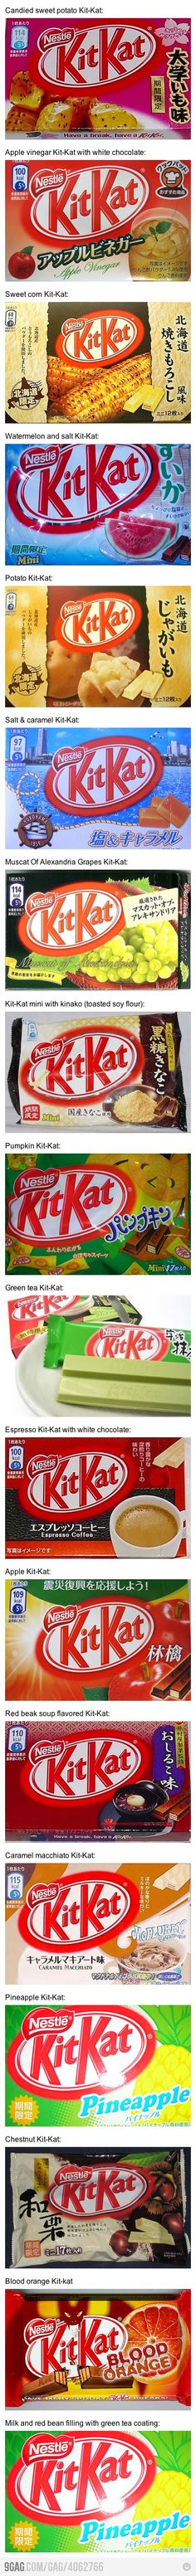 "Fun Fact: The Japanese are weirdly obsessed with Kit Kats - the name sounds similar to their word for ""good luck."" This, combined with a cultural enjoyment of collecting things, has lead to the making of  dozens of exclusive Kit Kat varieties you can't get anywhere else."